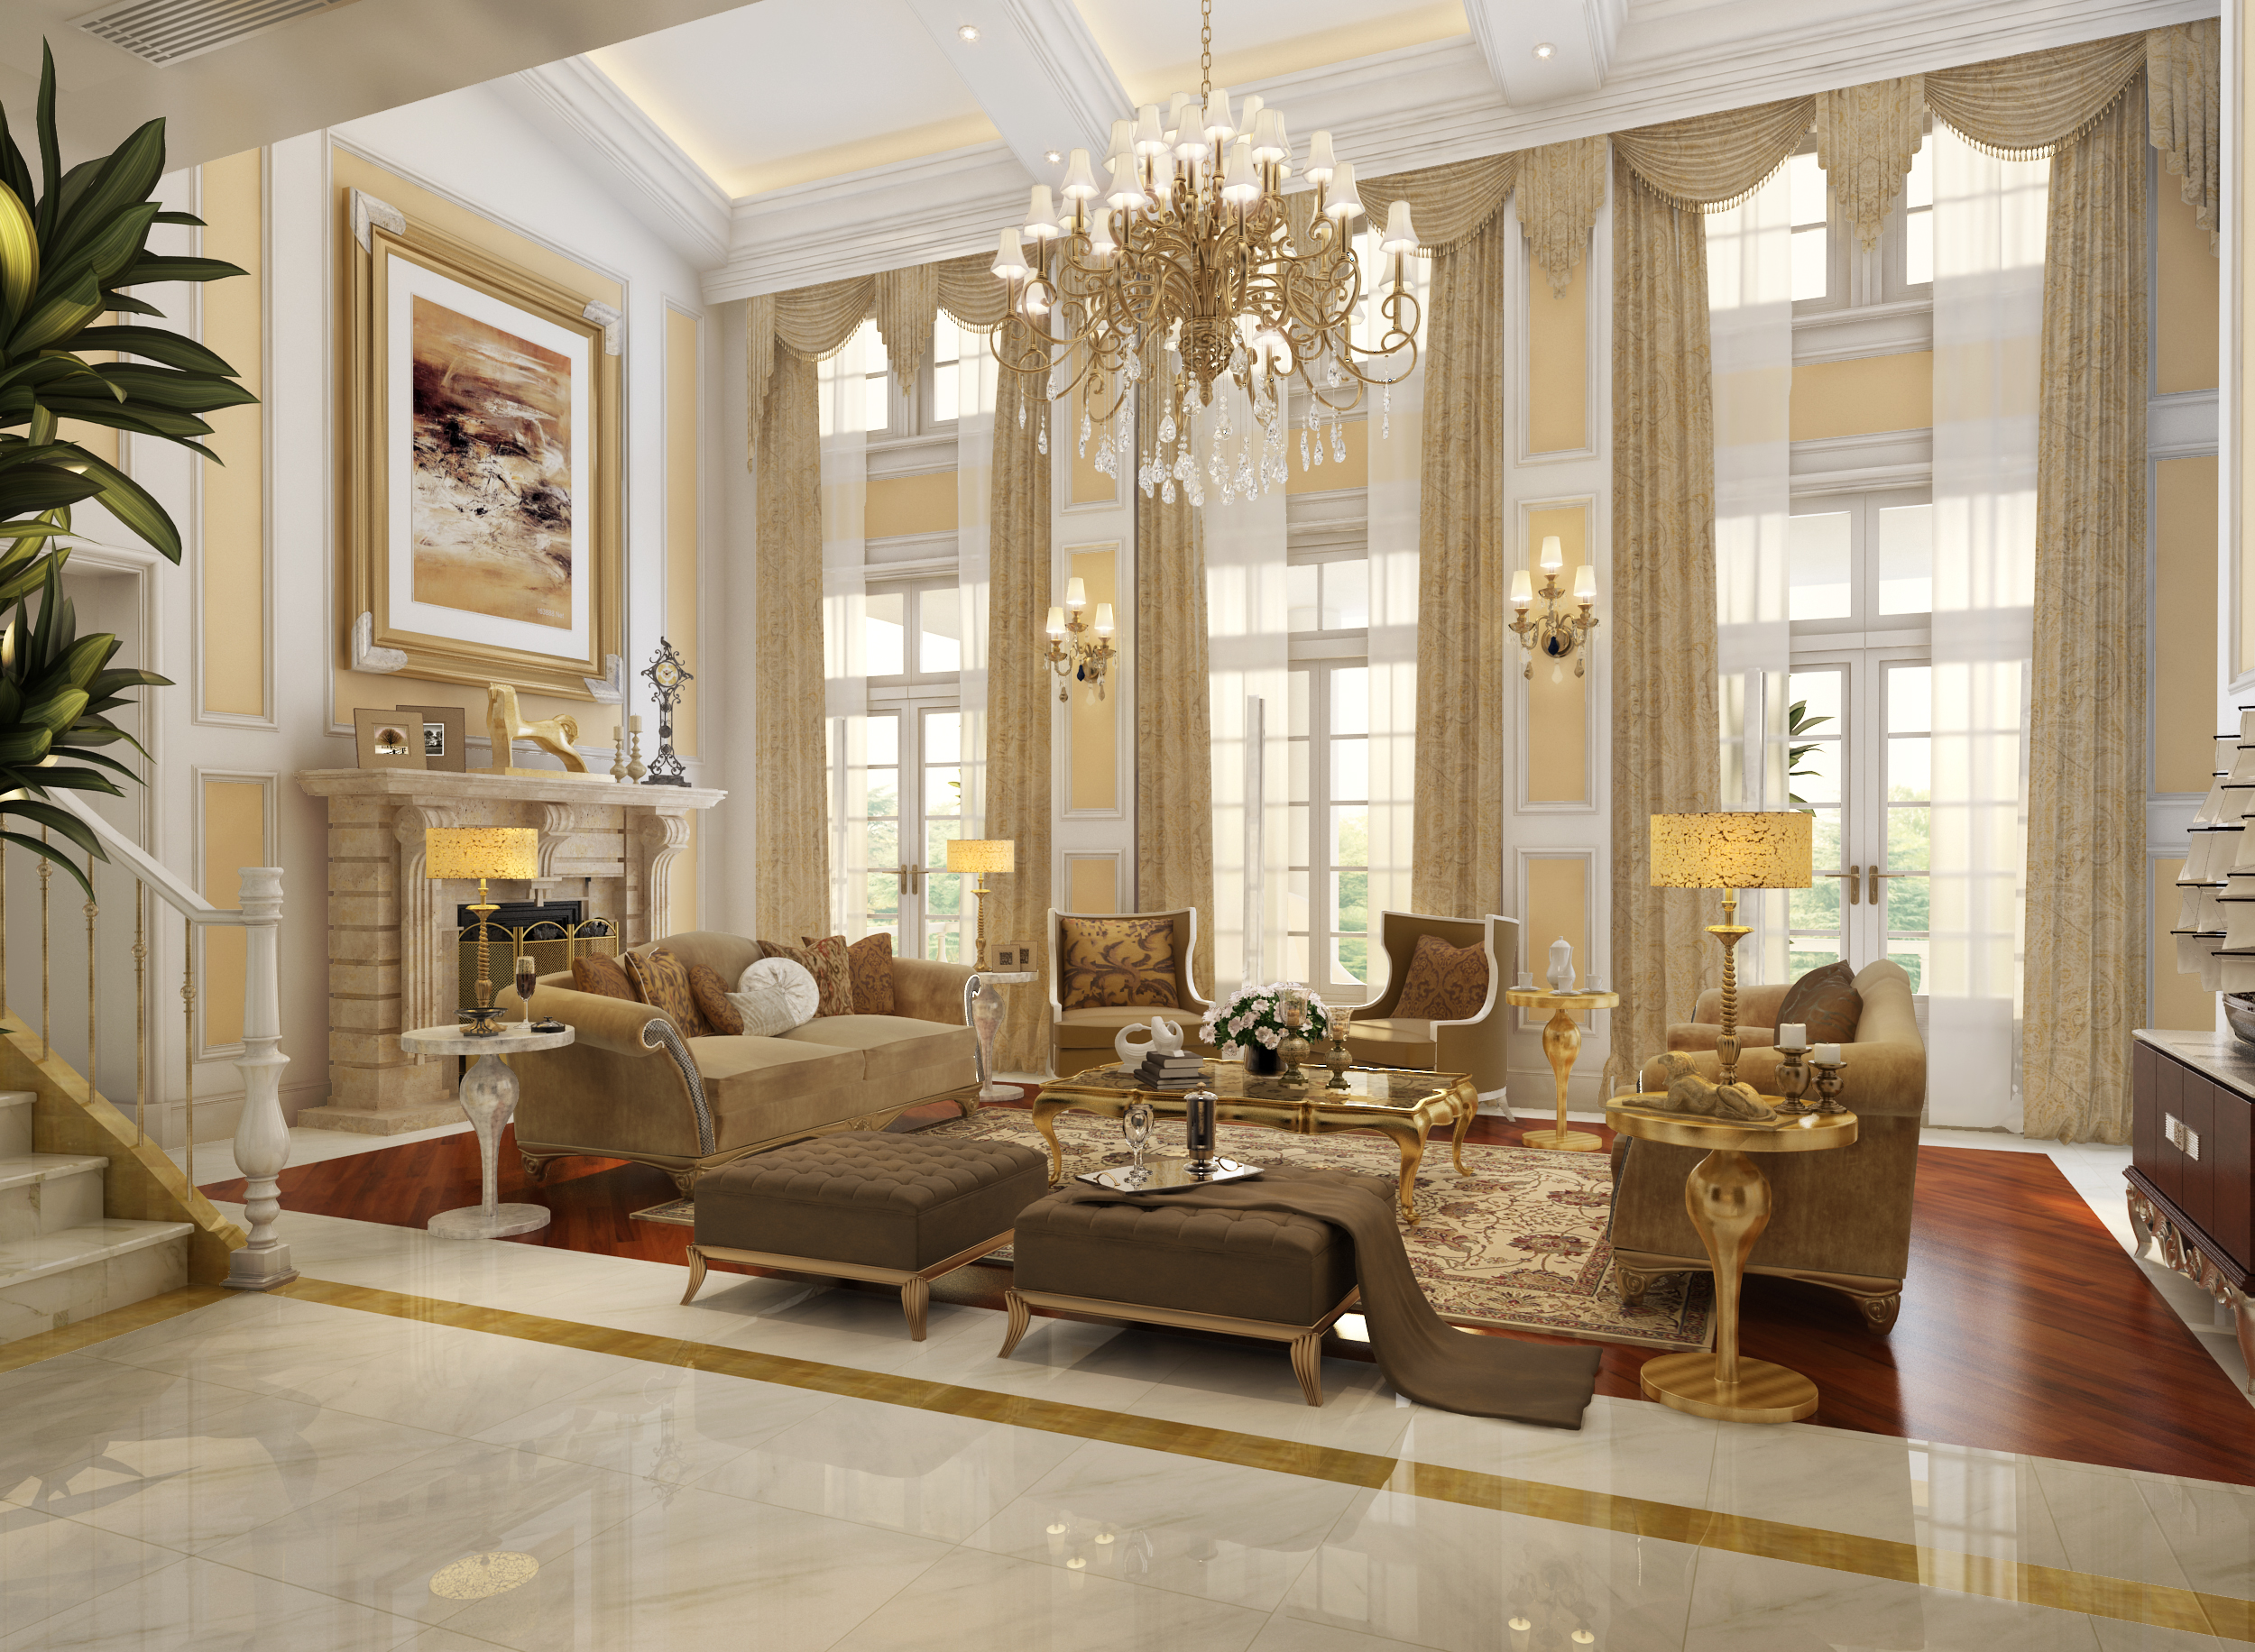 Luxury Victorian Living Rom With Awesome Chandelier Brown Furniture Set Warm Fireplace Marble Ligh Floor And